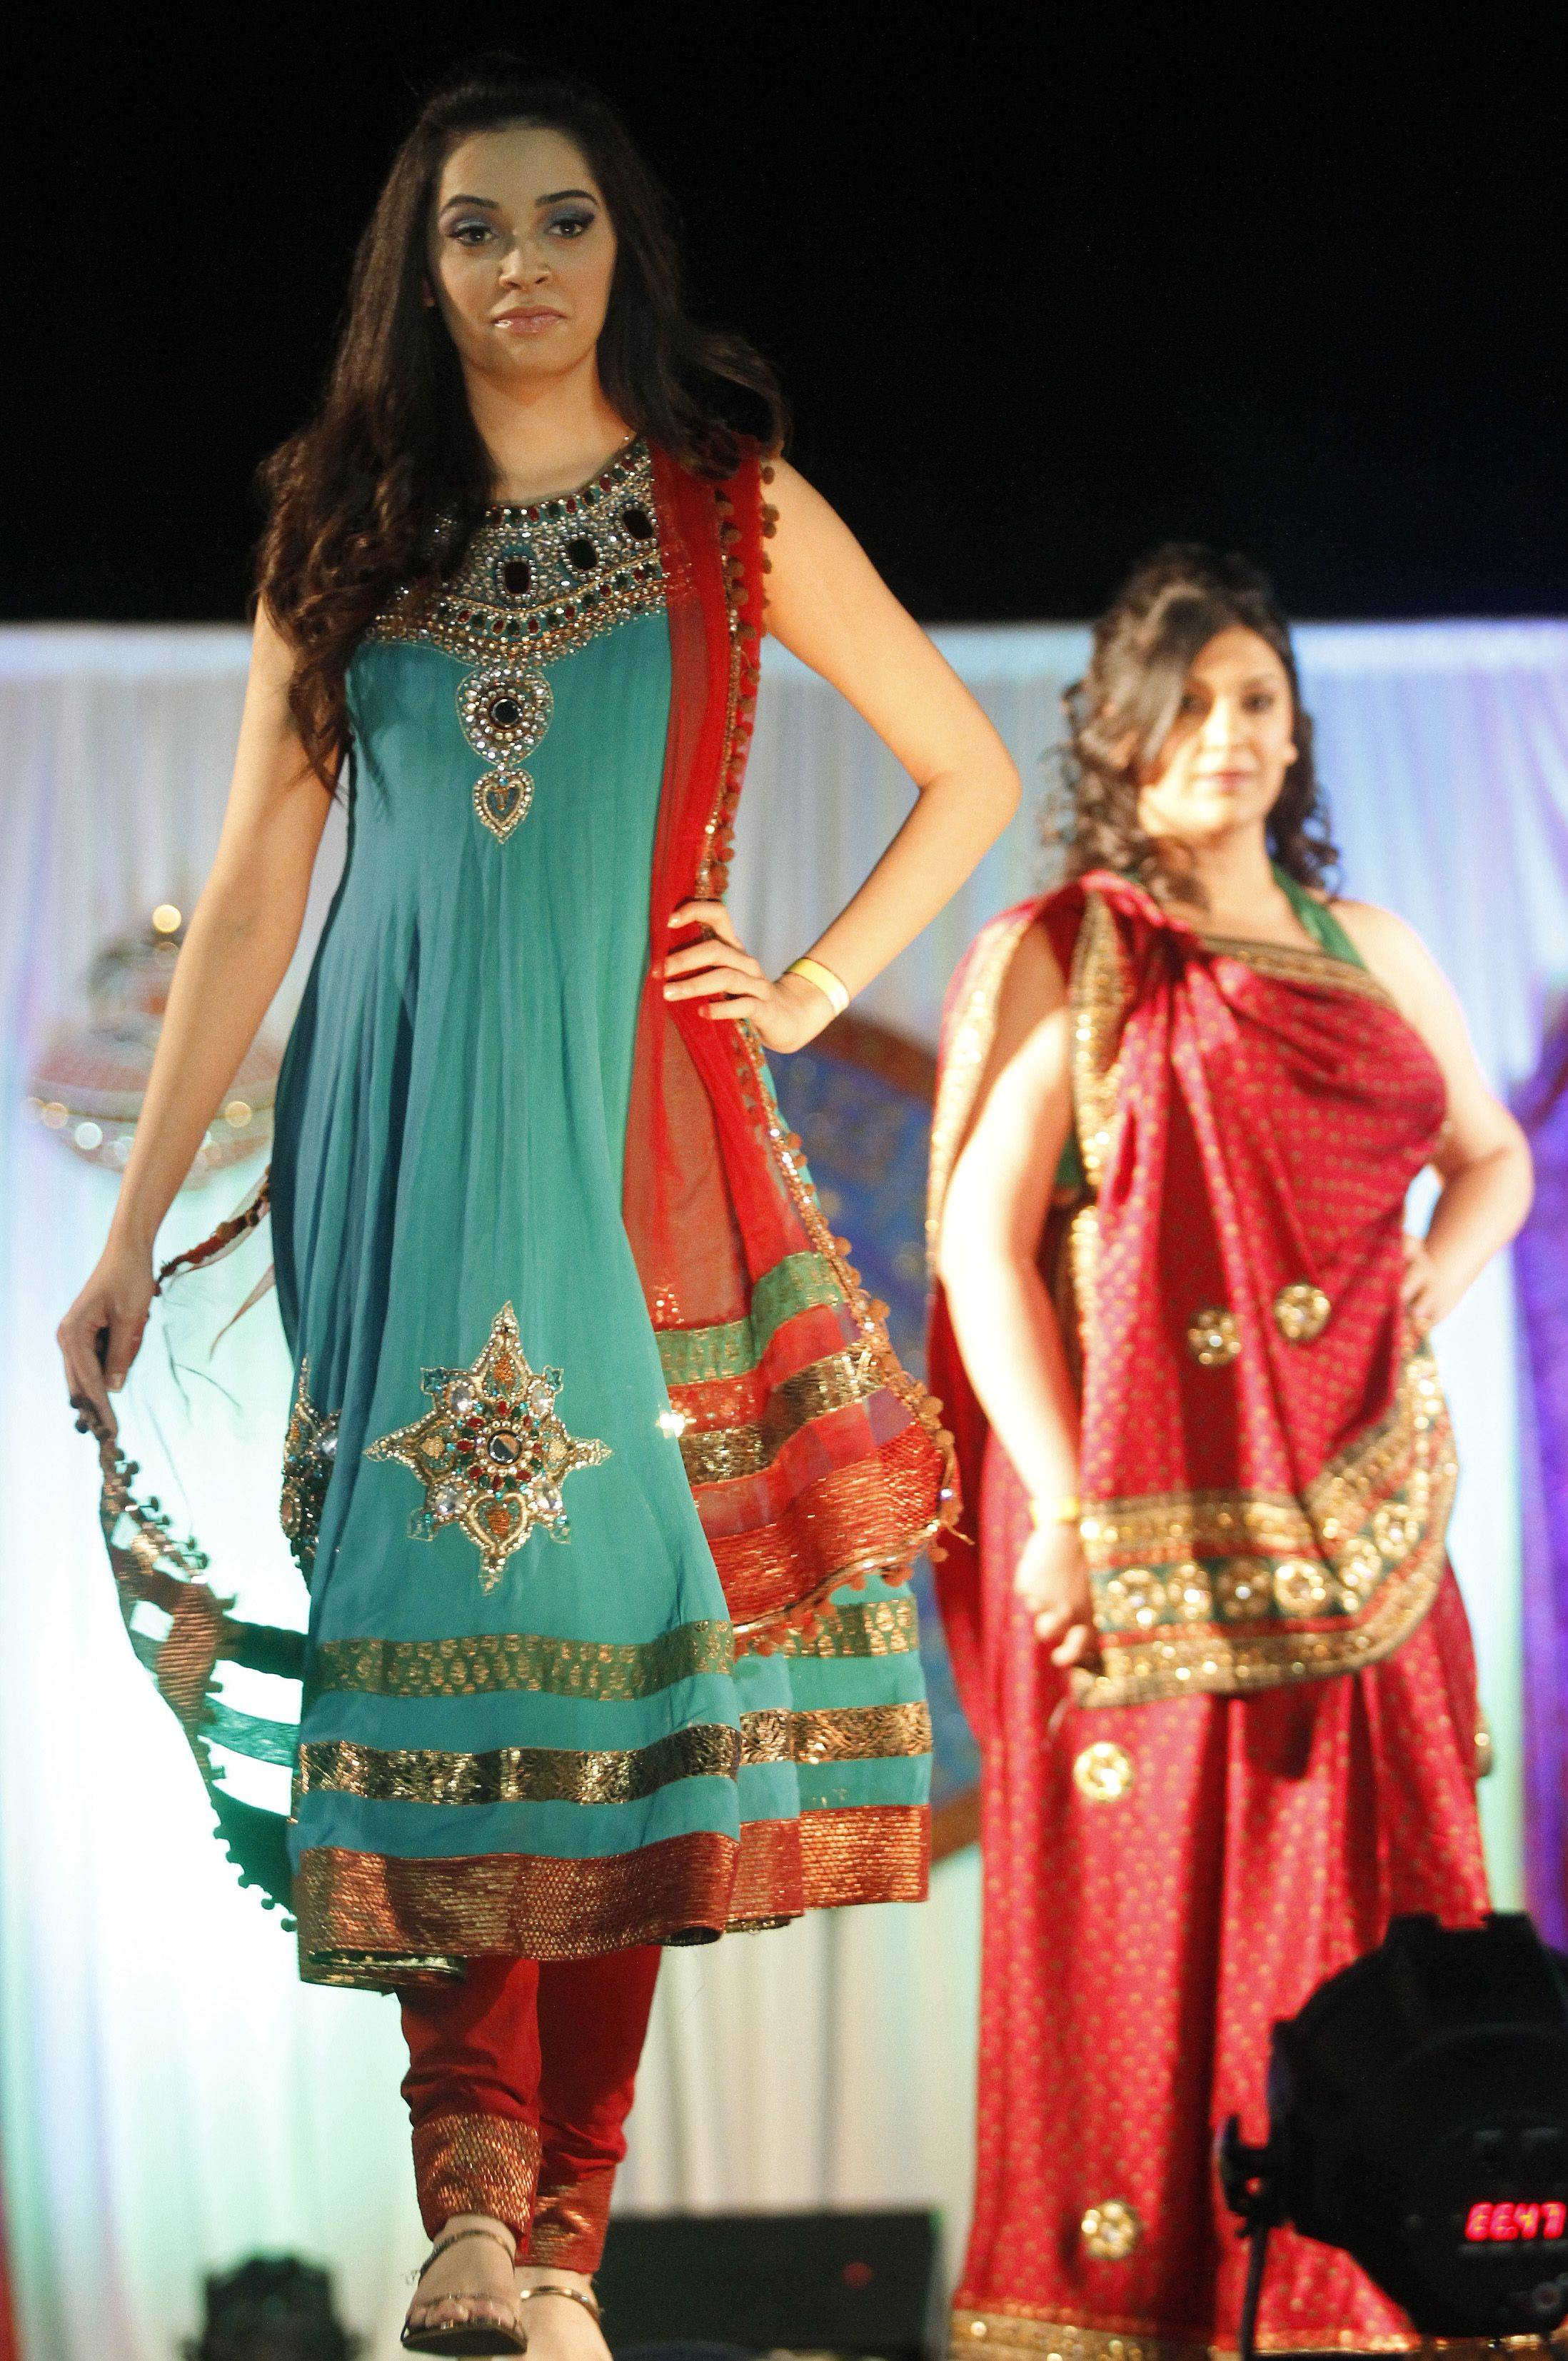 The Vibrant India Festival was held Sunday afternoon at the Sears Centre. A Fashion show displaying different kinds of Indian Fashion was included in the days events along with music, food, clothing and jewelry vendors.